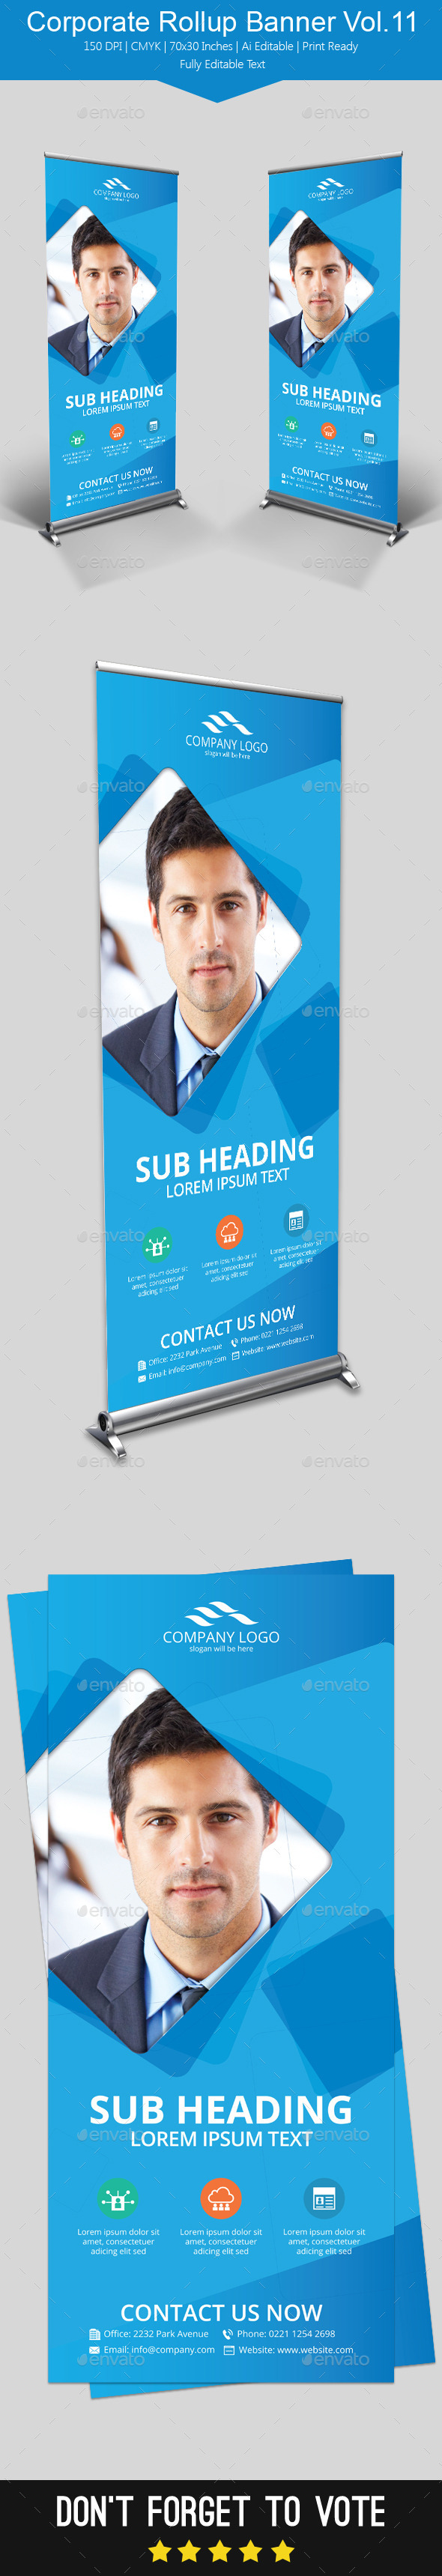 Corporate Rollup Banner Vol.11 - Signage Print Templates